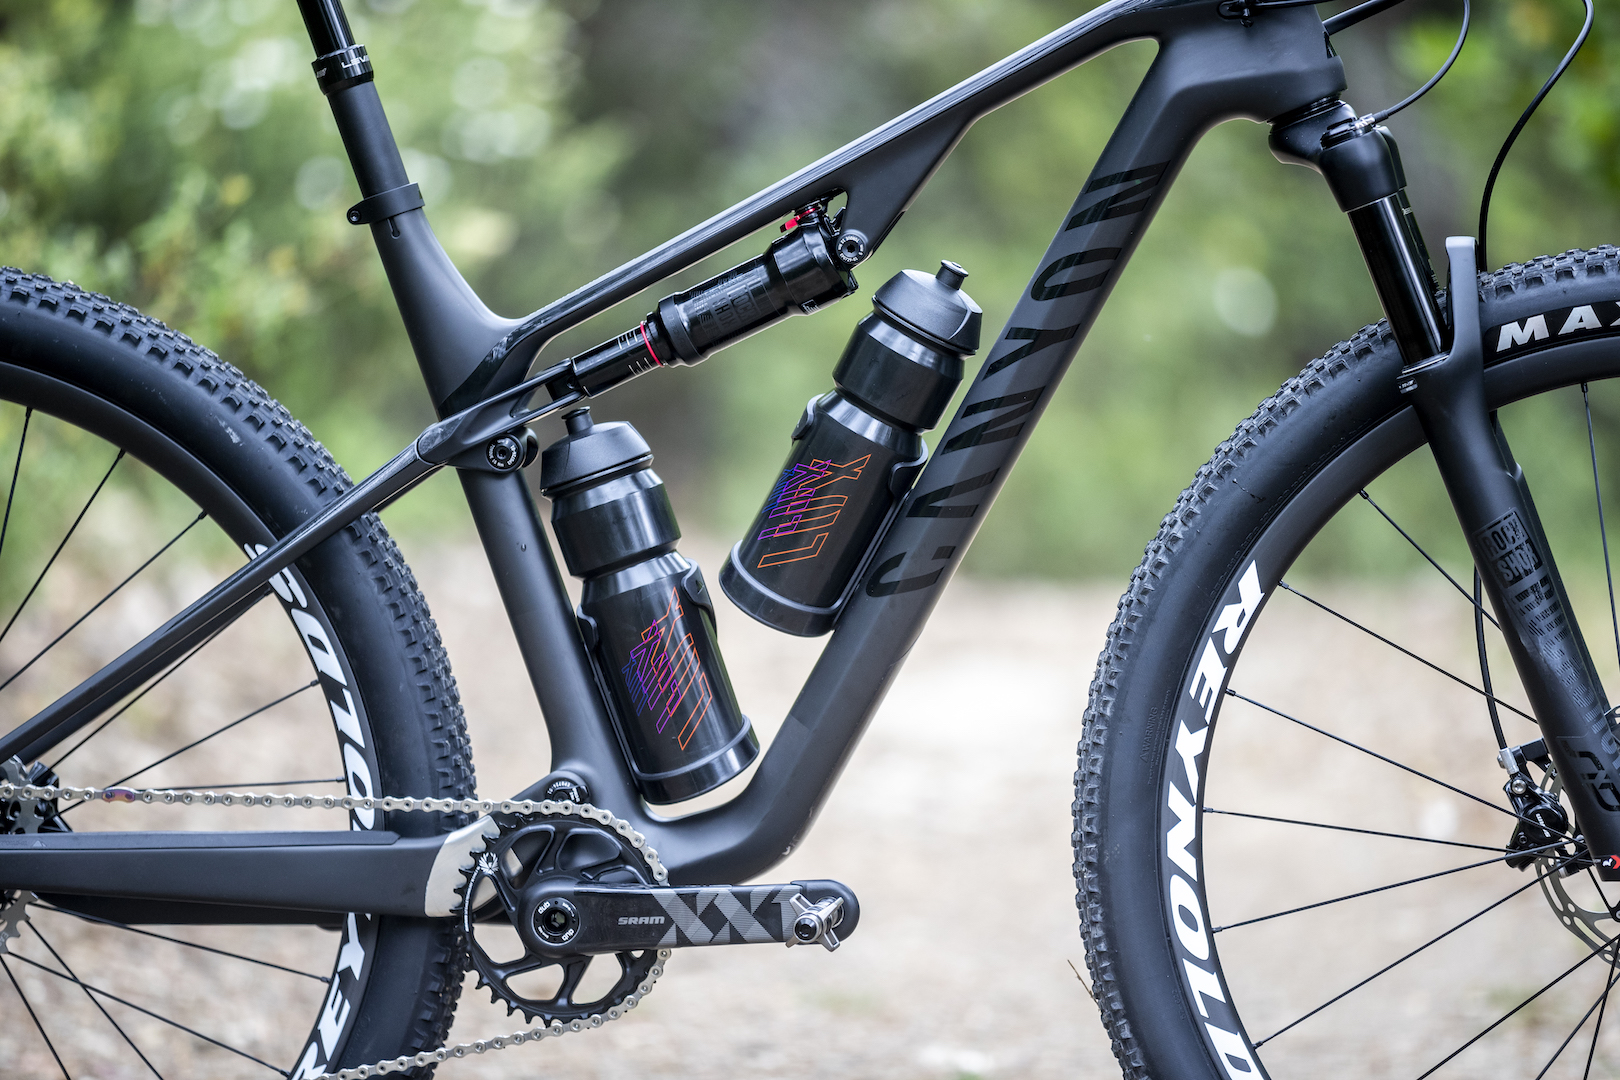 Canyon's new Lux full suspension XC race bike will fit two